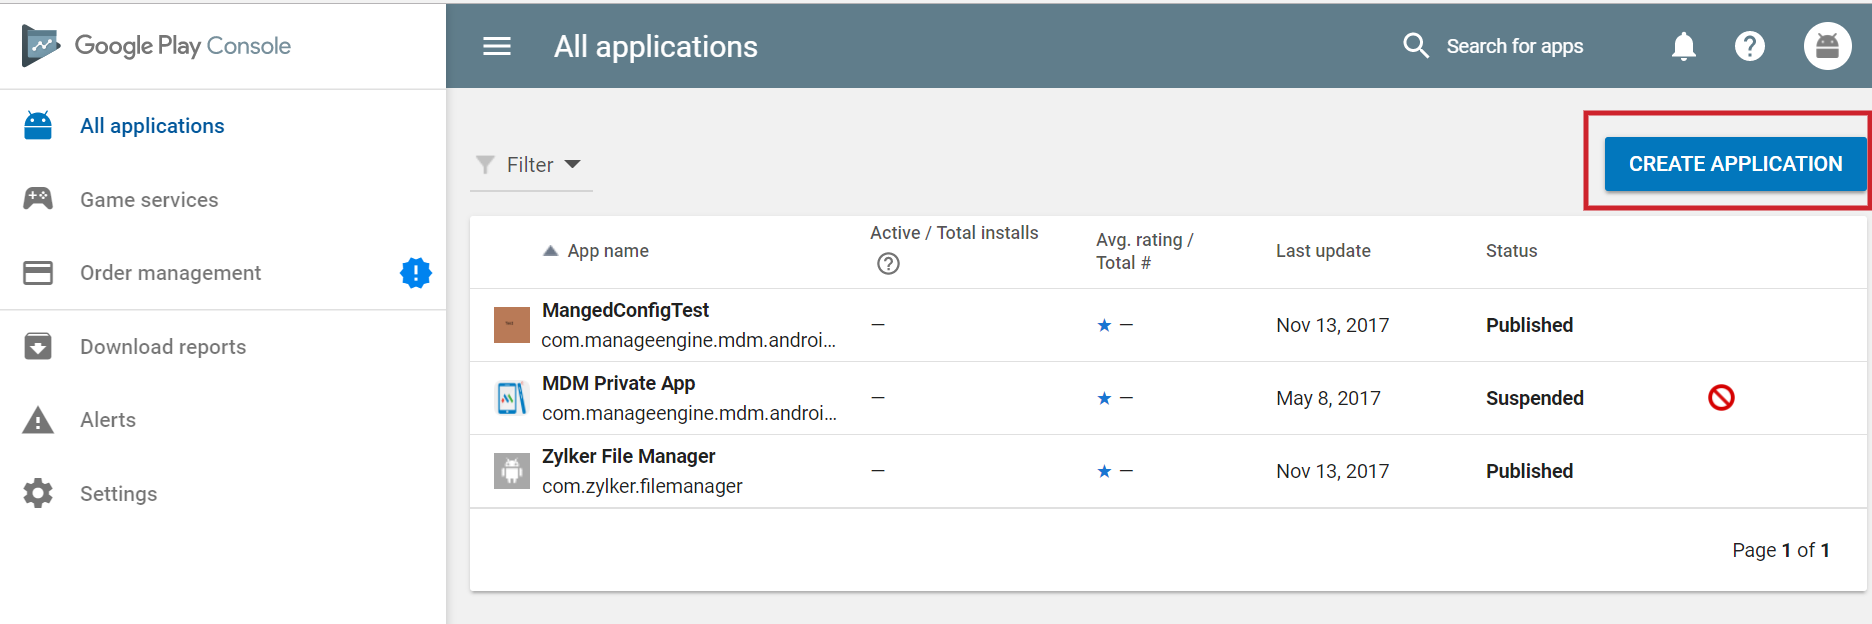 Manage Android app lifecycle